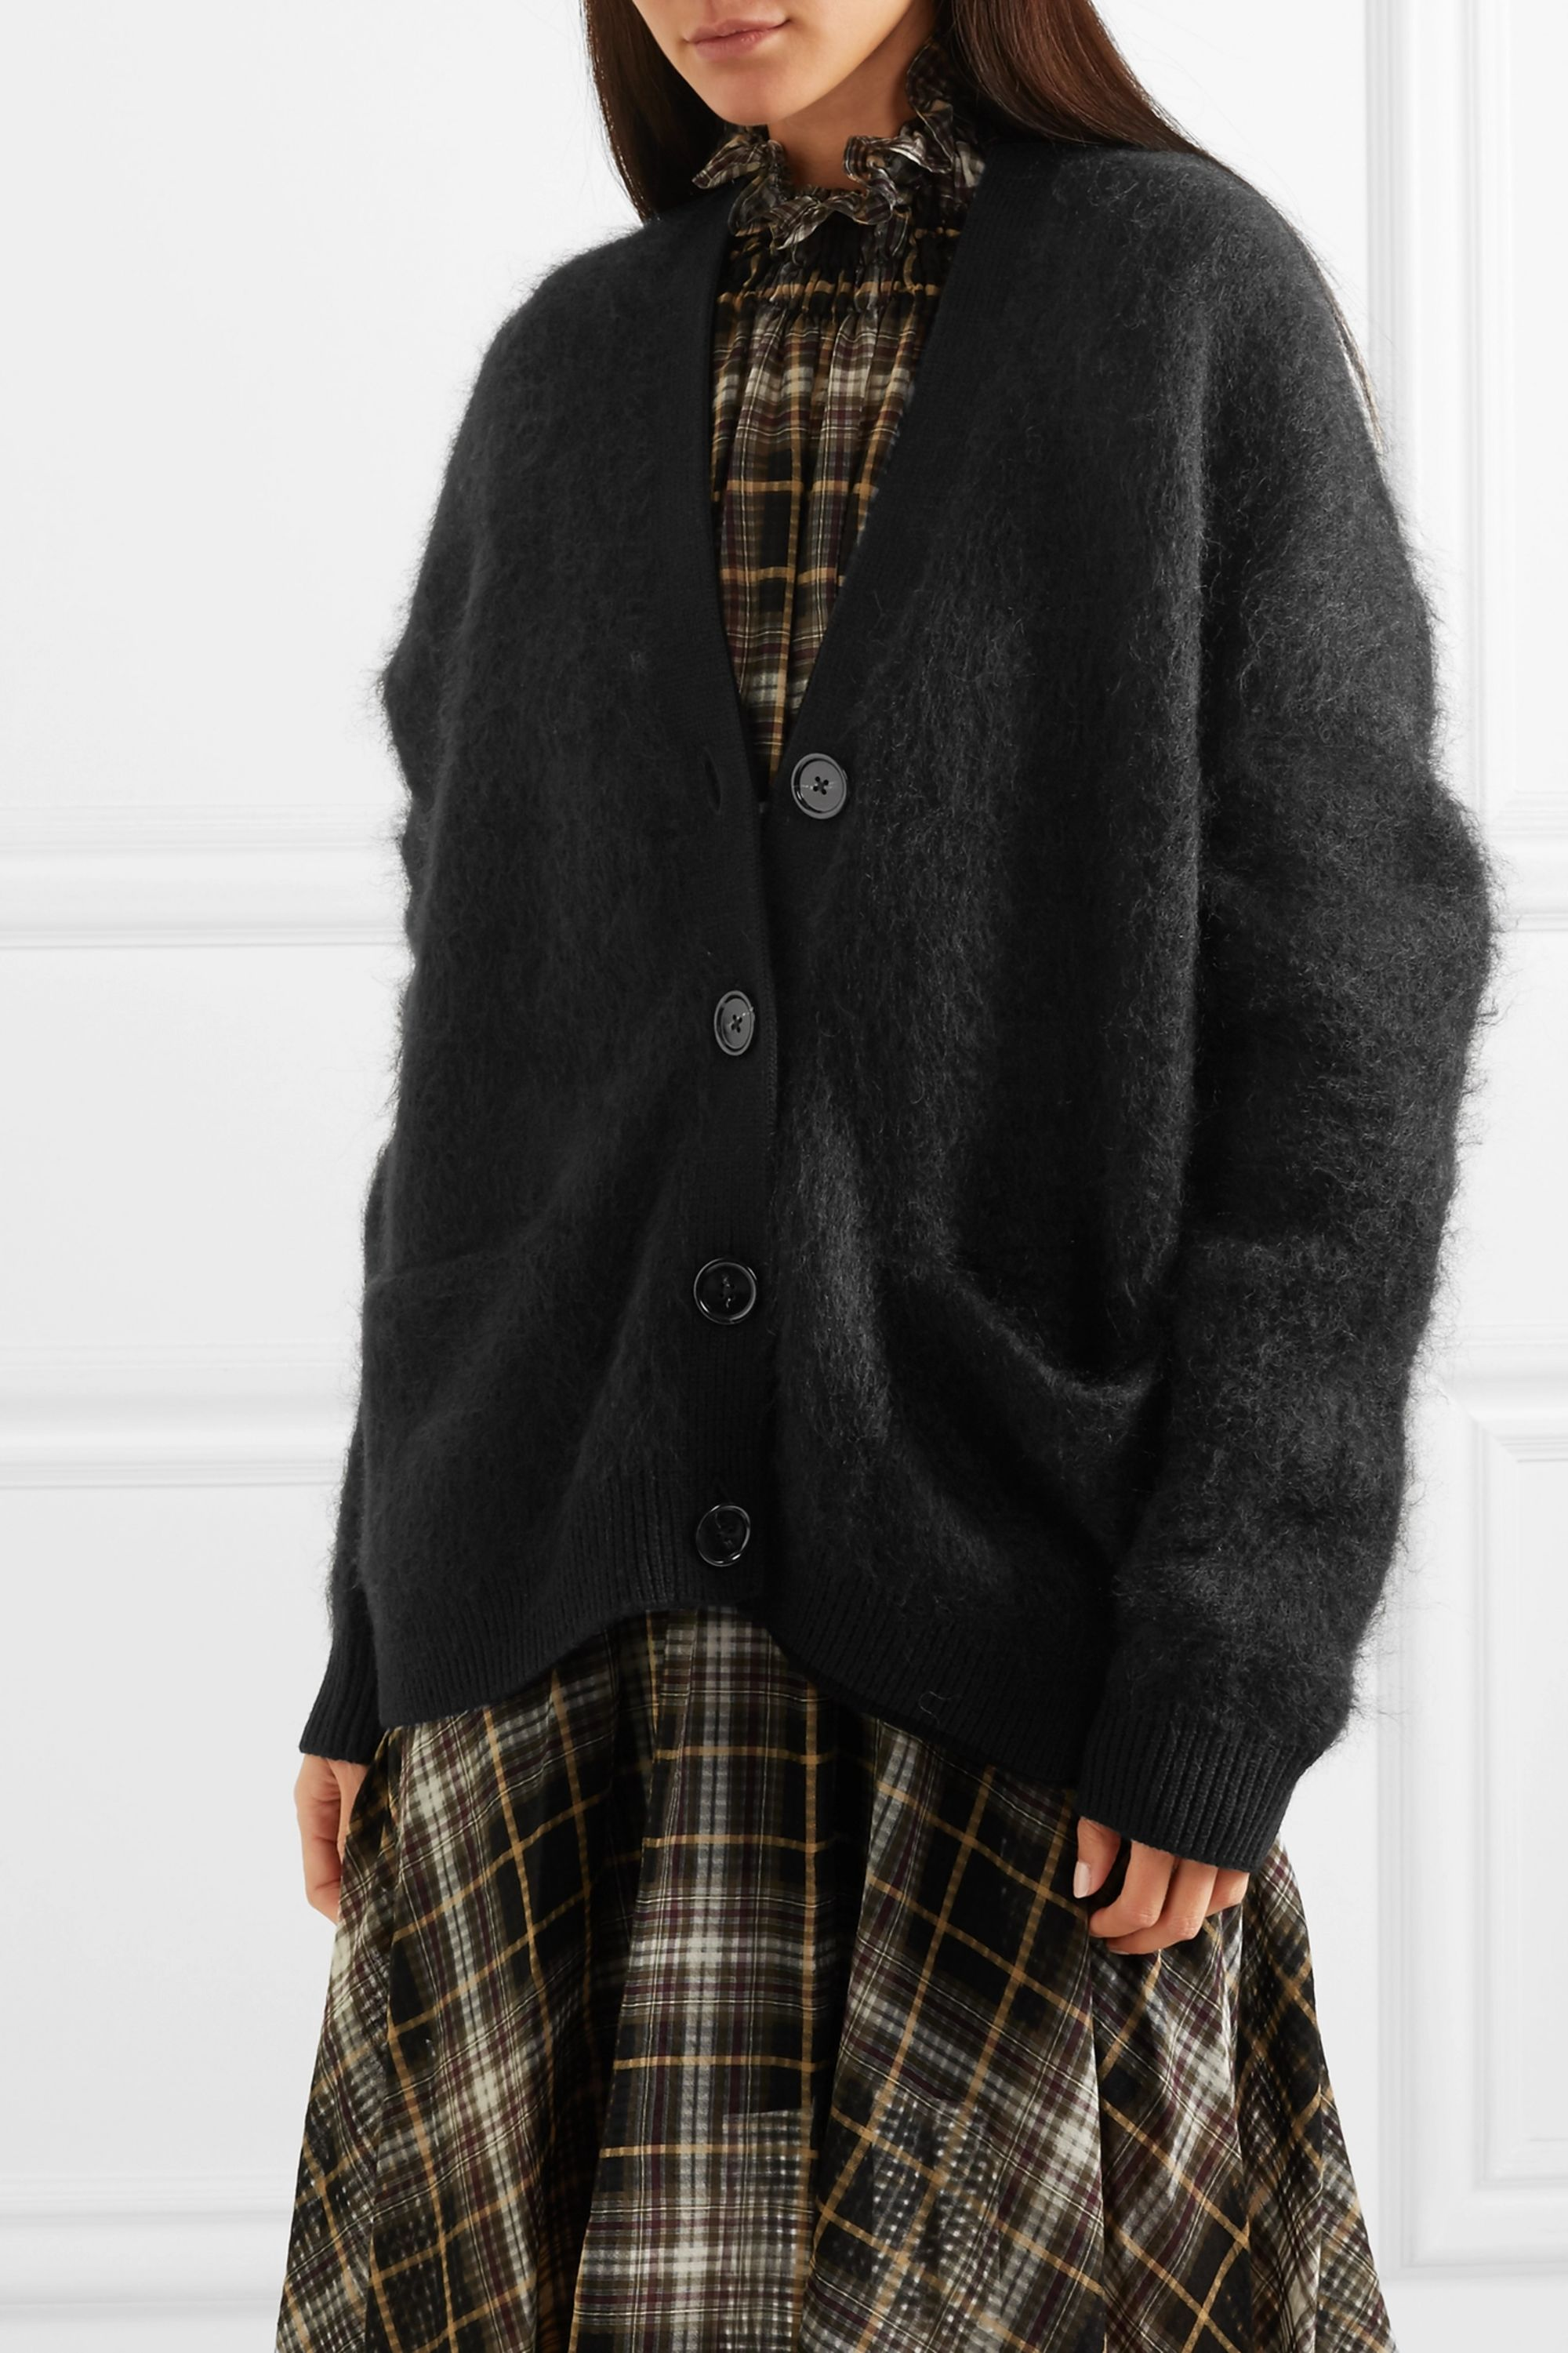 Acne Studios Rives knitted cardigan